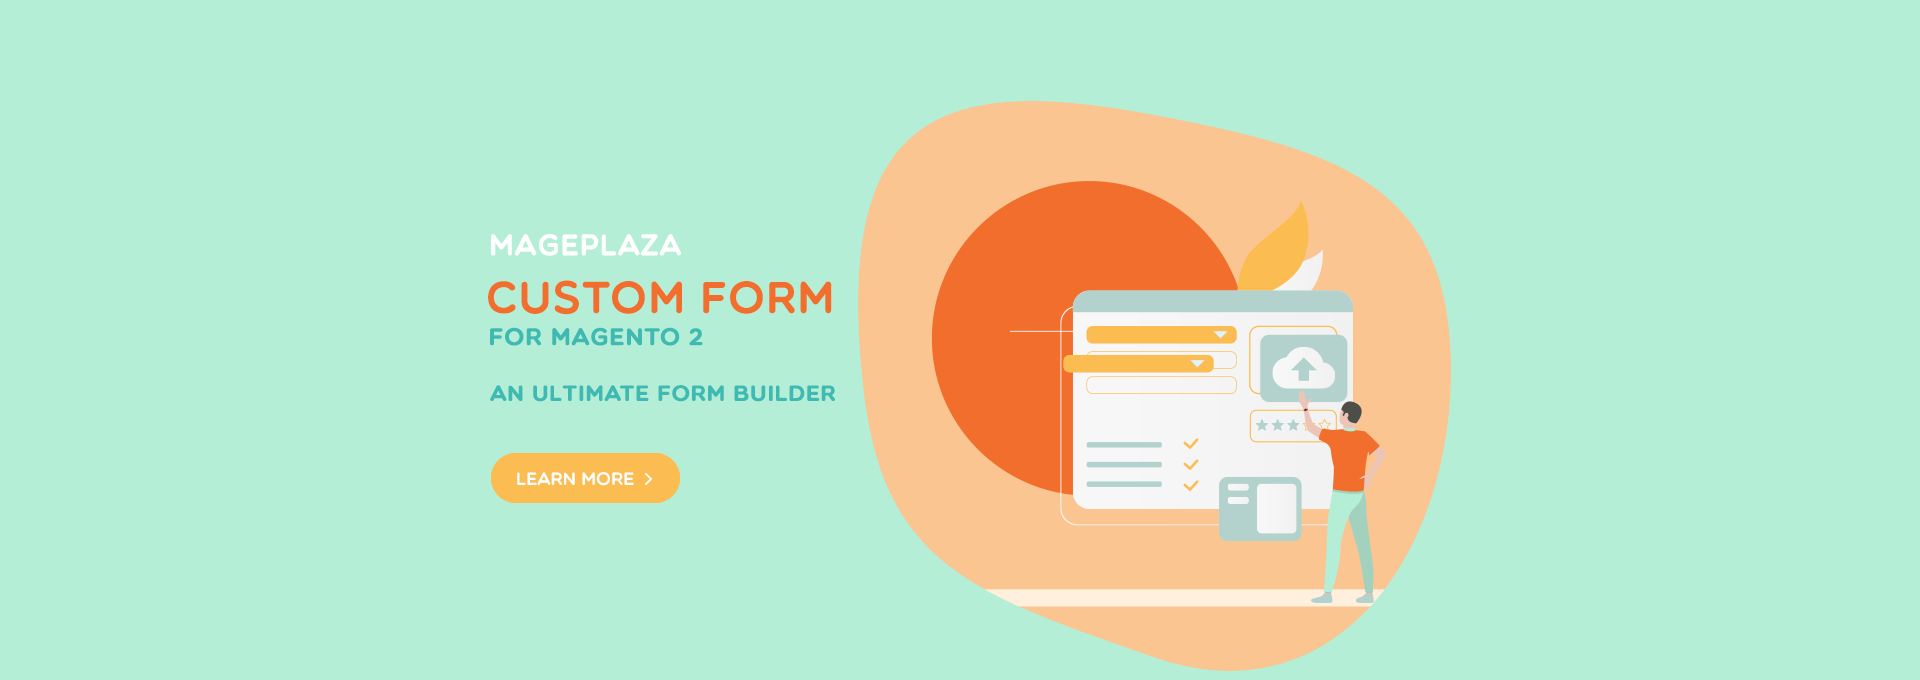 How to simply create Magento 2 Custom Form?